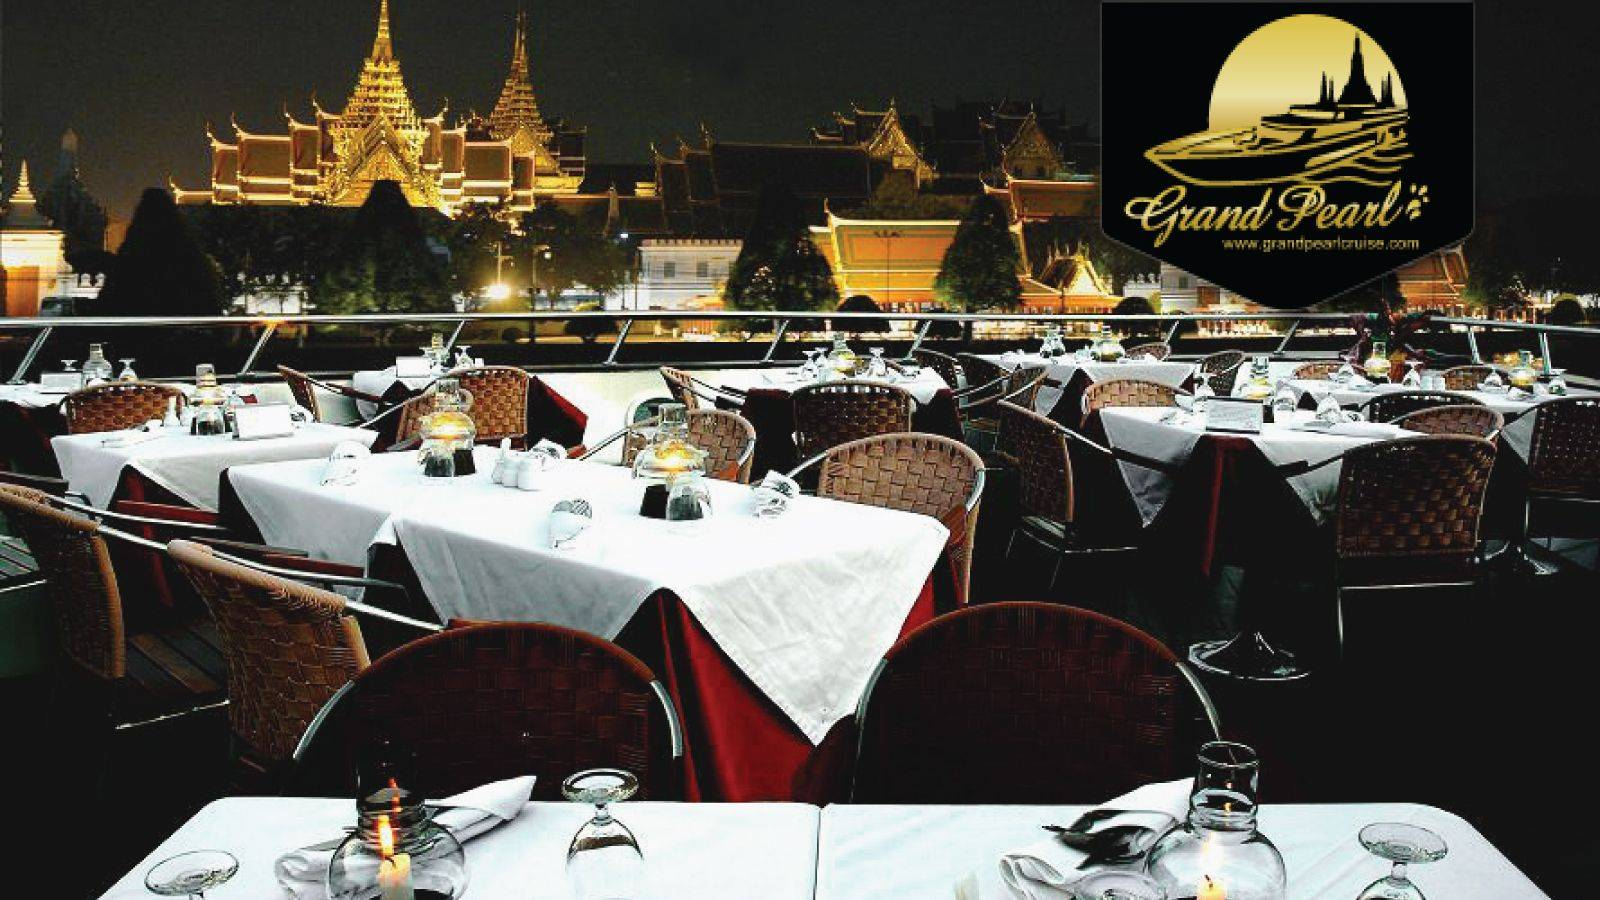 Grand Pearl Cruise: Luxury on the River